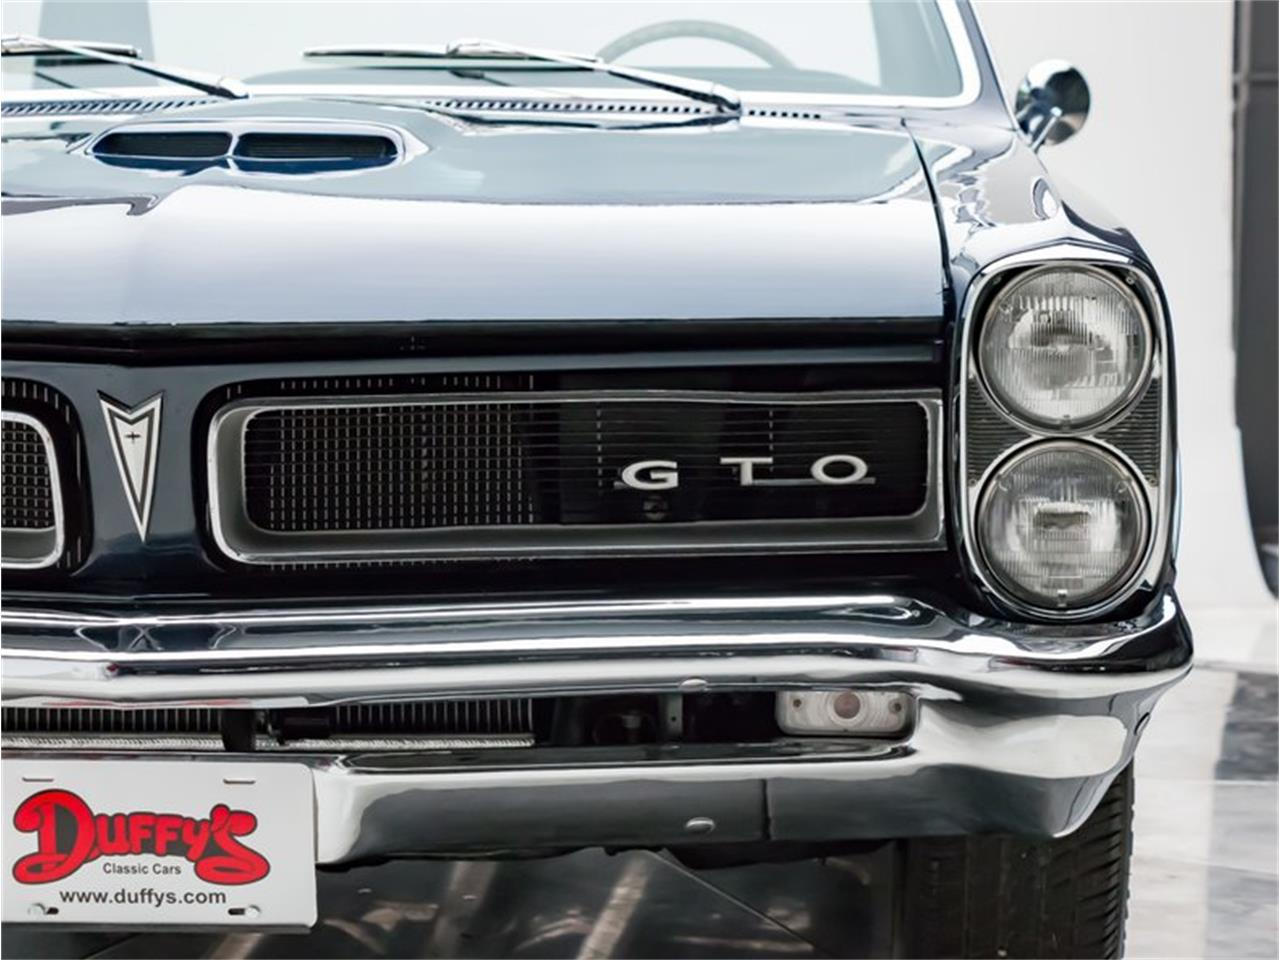 Large Picture of '65 GTO Offered by Duffy's Classic Cars - N6UR